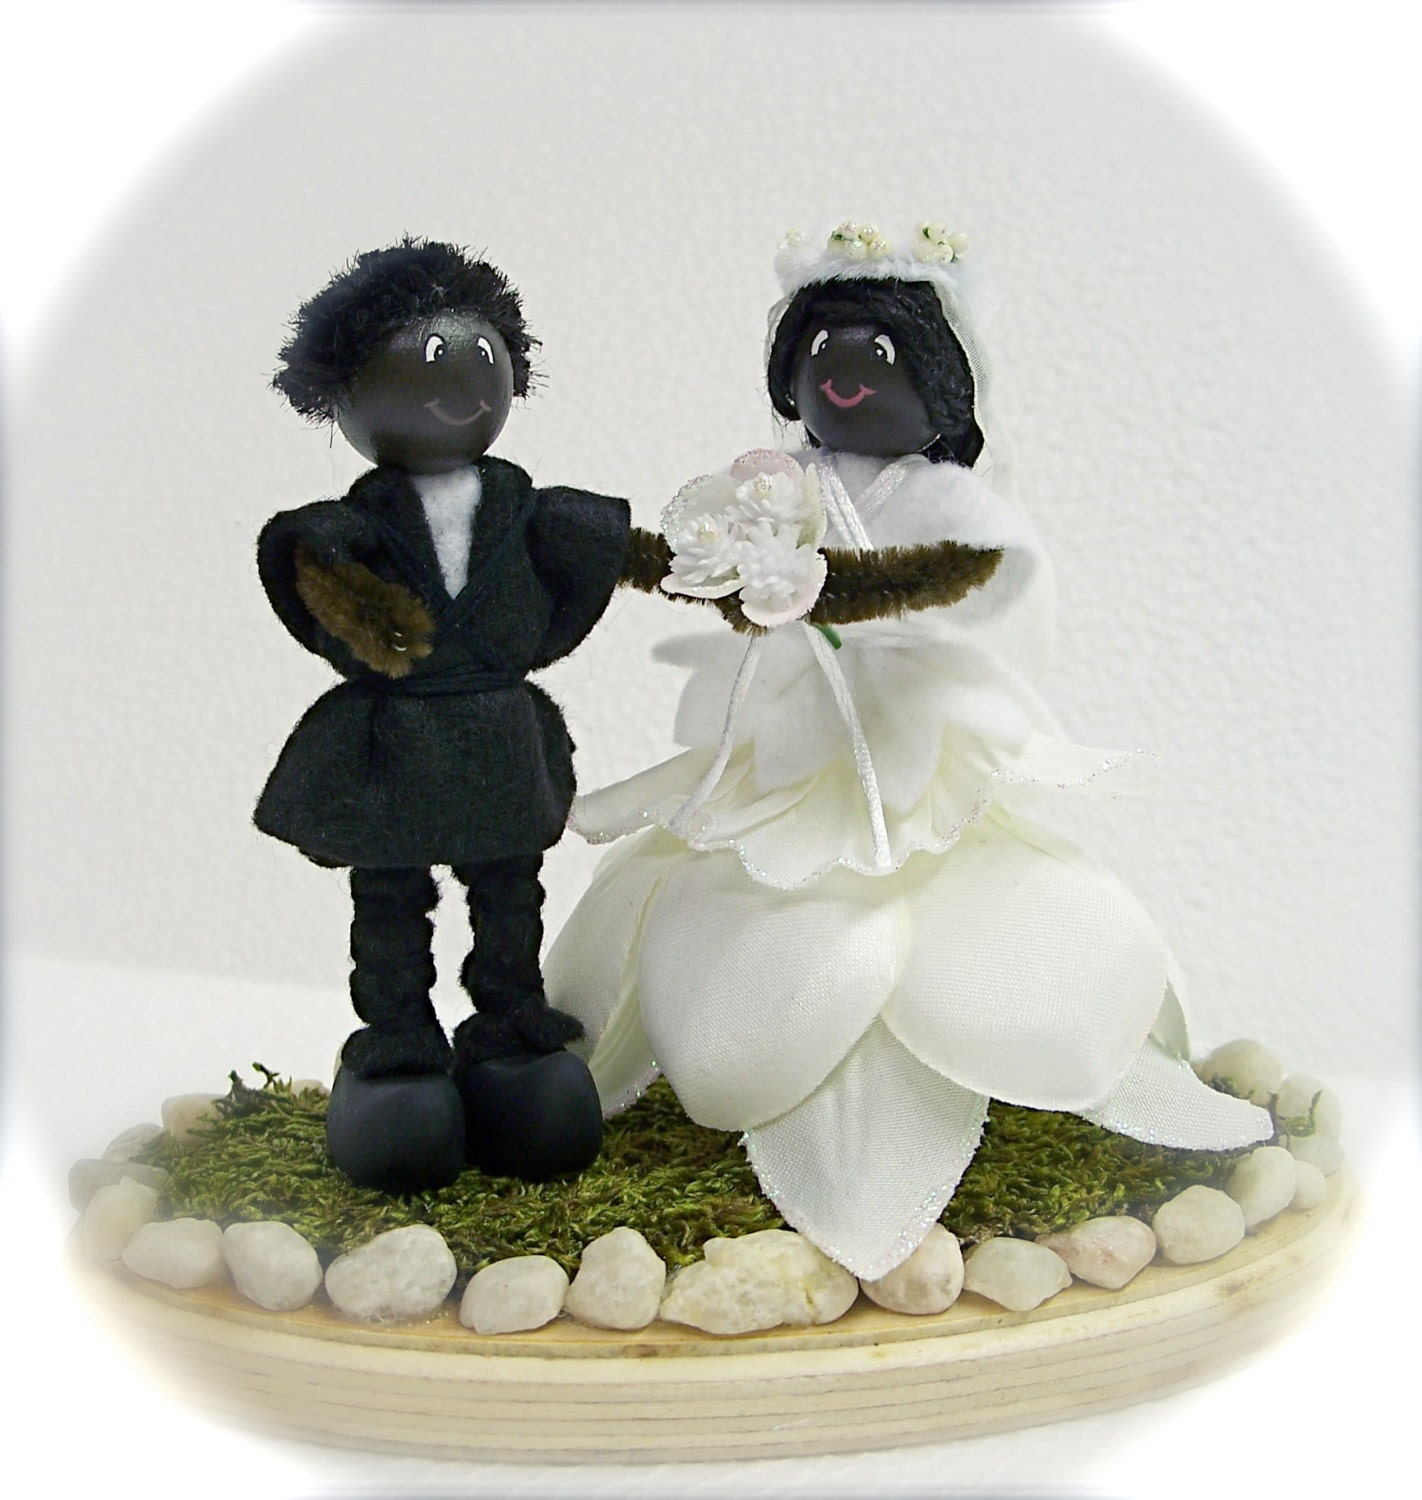 nigerian wedding cake toppers wedding cake topper american mr amp mrs folk 17878